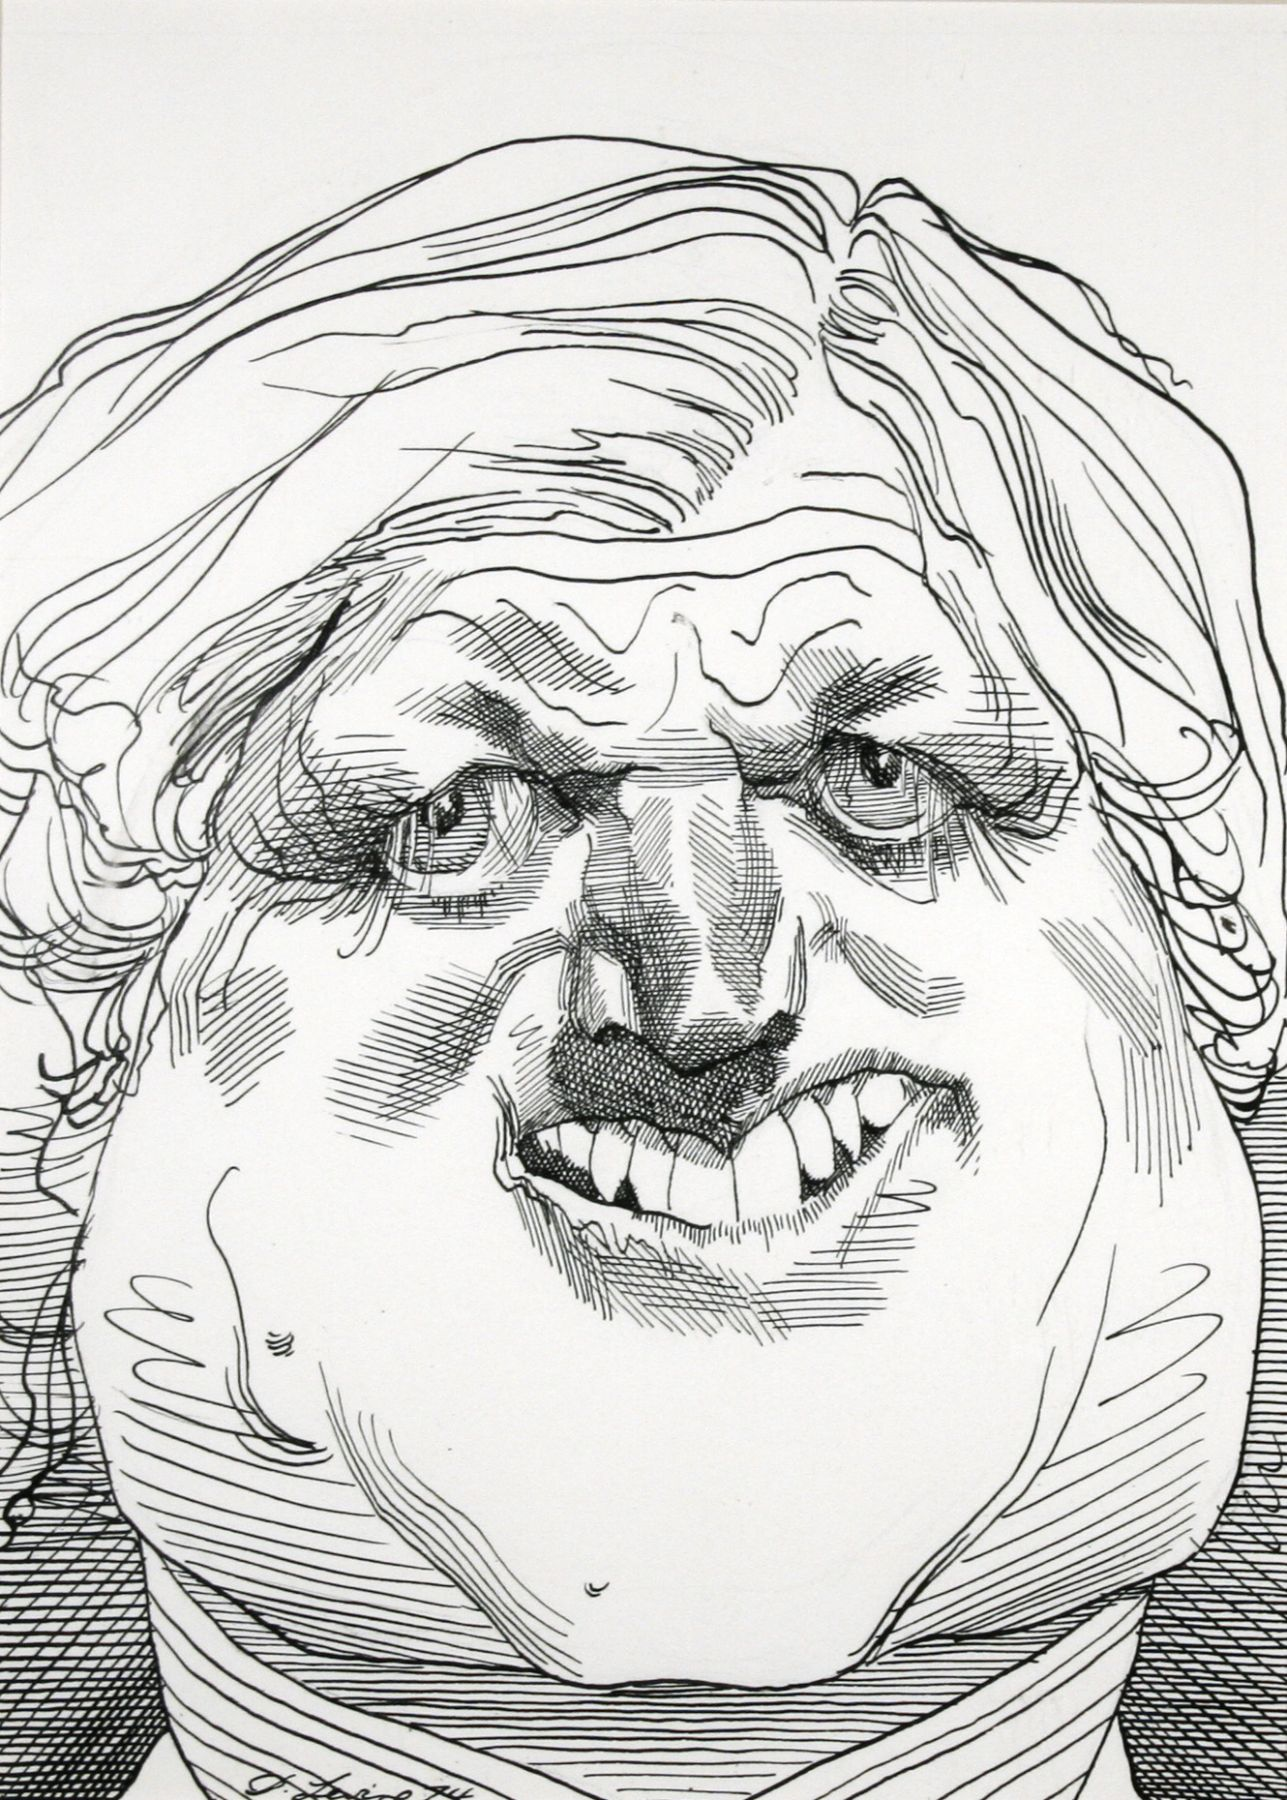 David Levine, Edward Kennedy, 1974, graphite and ink on paper, 14 x 11 inches